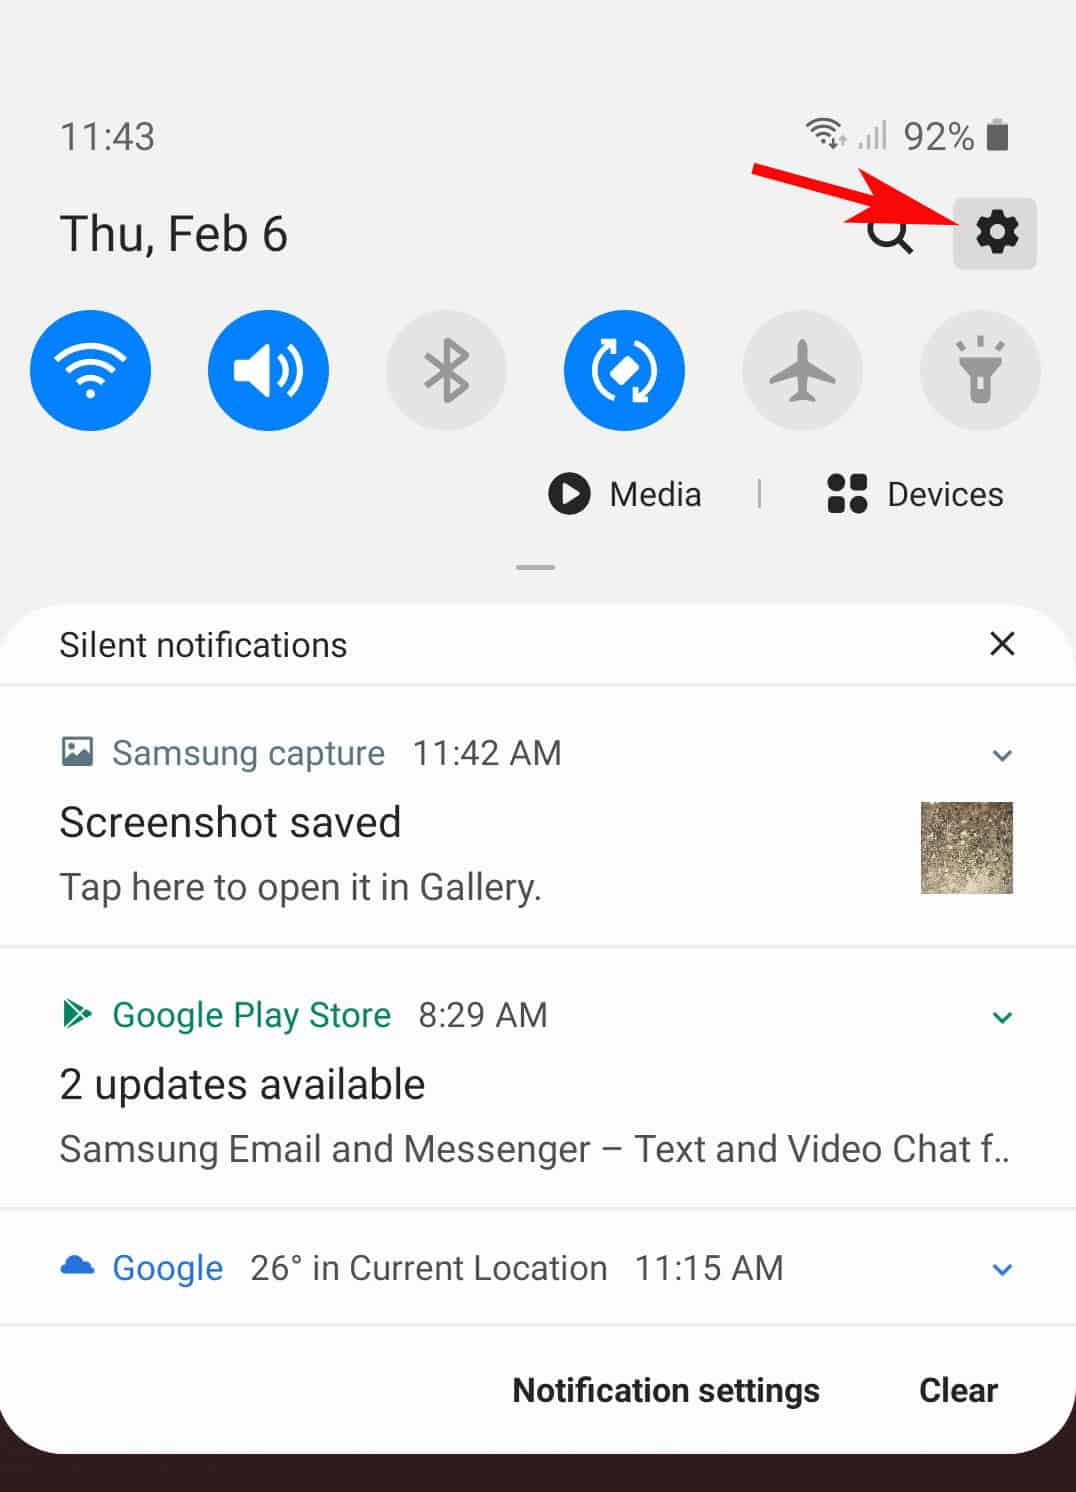 galaxy s20 reset accessibility settings - navigation panel settings icon